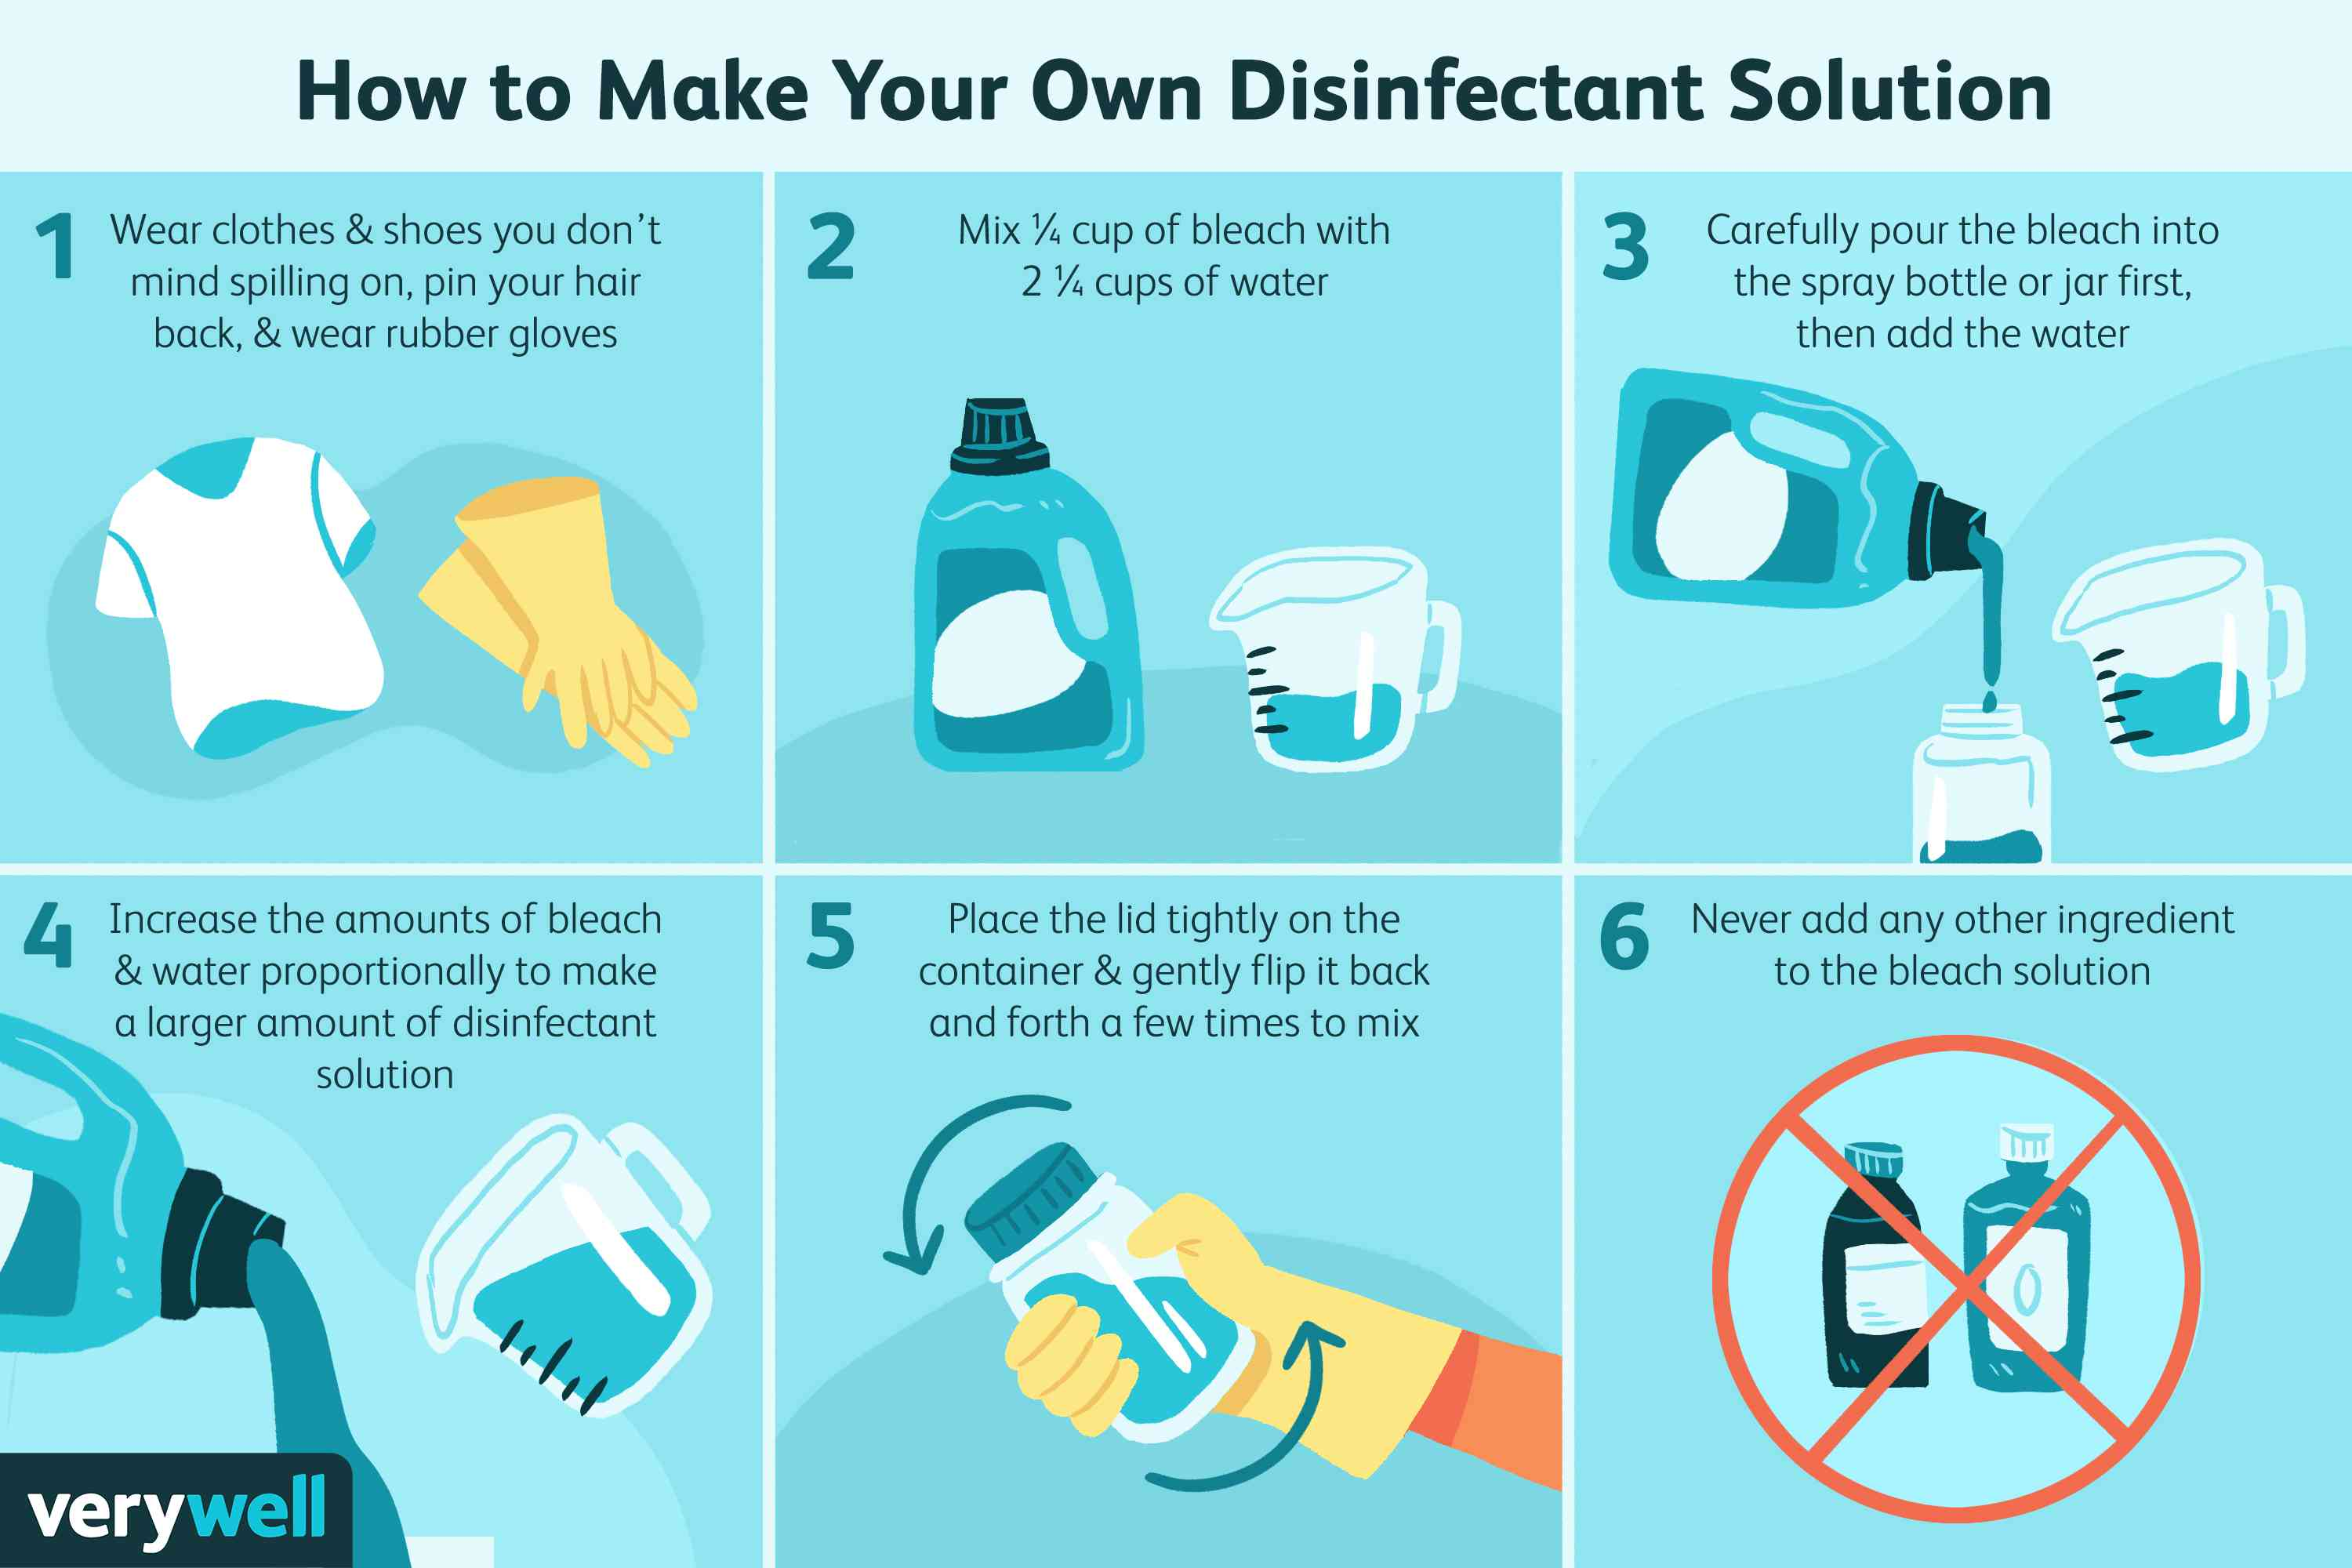 How to Make Your Own Disinfectant Solution